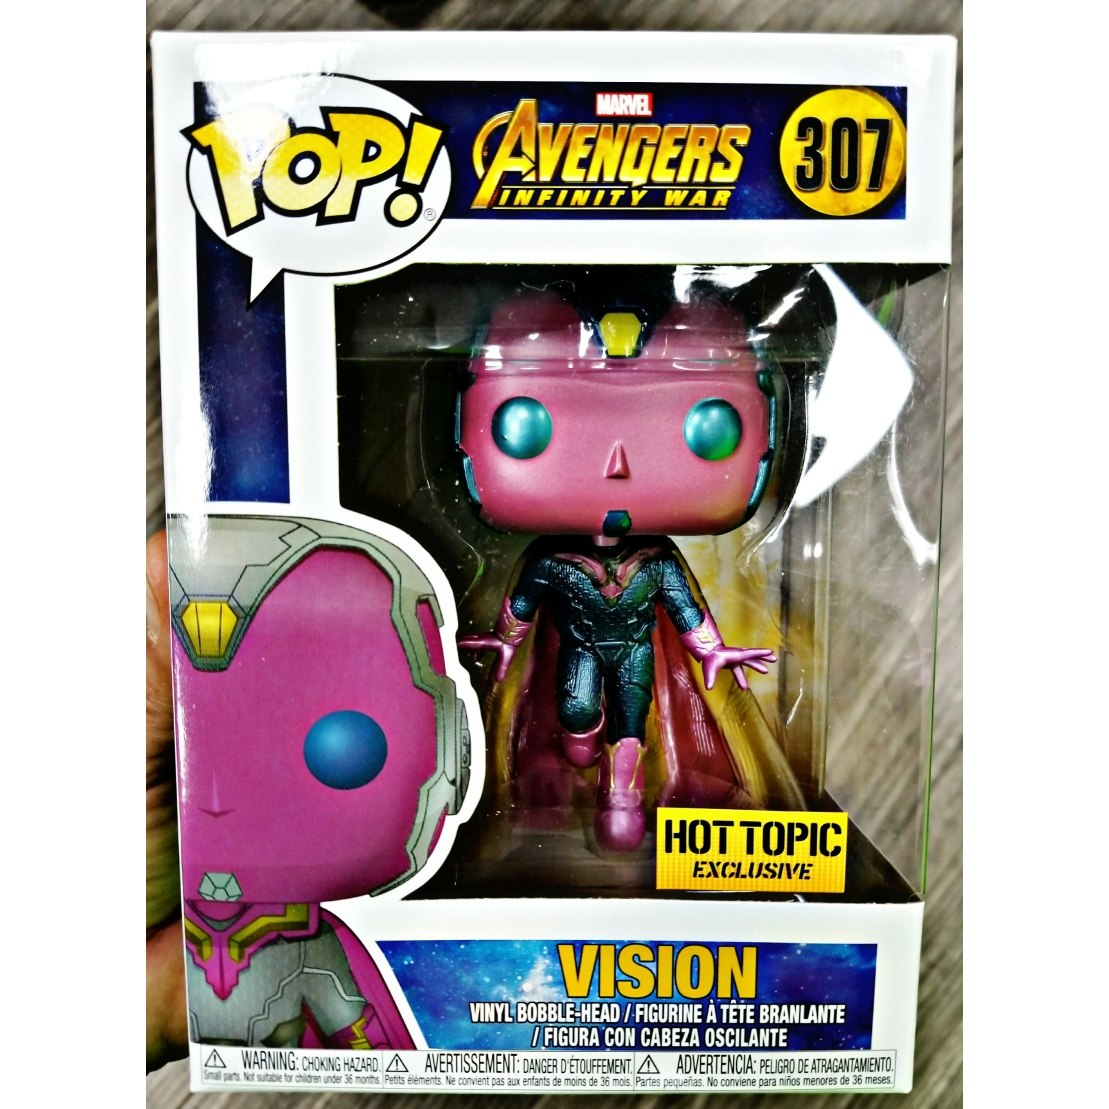 vision avengers infinity war funko pop 307 hot topic excl